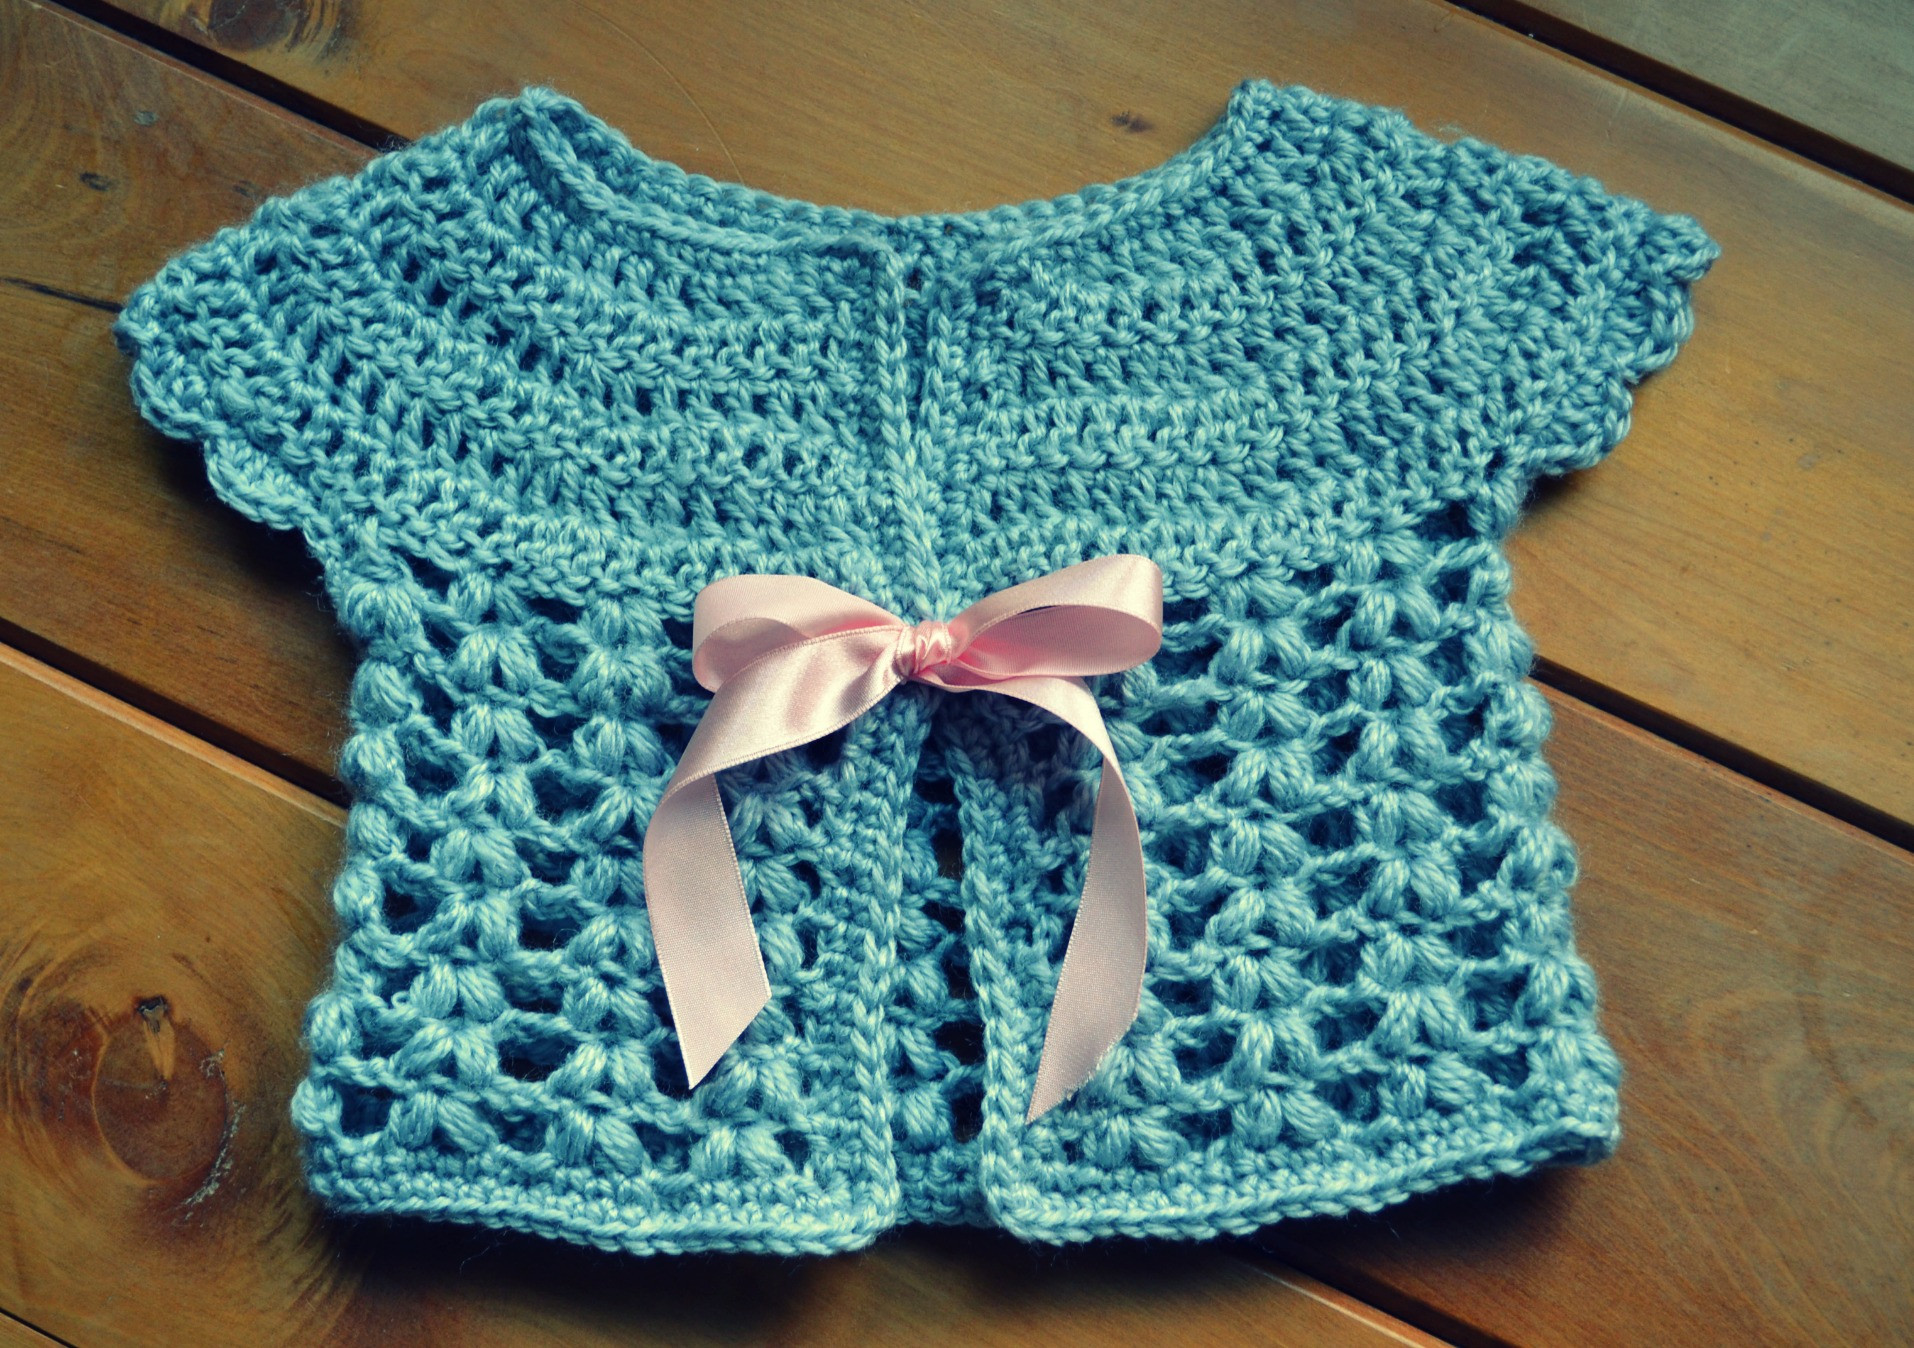 Free Crochet Patterns for Babies Cardigans Lovely Grey Grey Grey… – the Green Dragonfly Of Superb 45 Models Free Crochet Patterns for Babies Cardigans